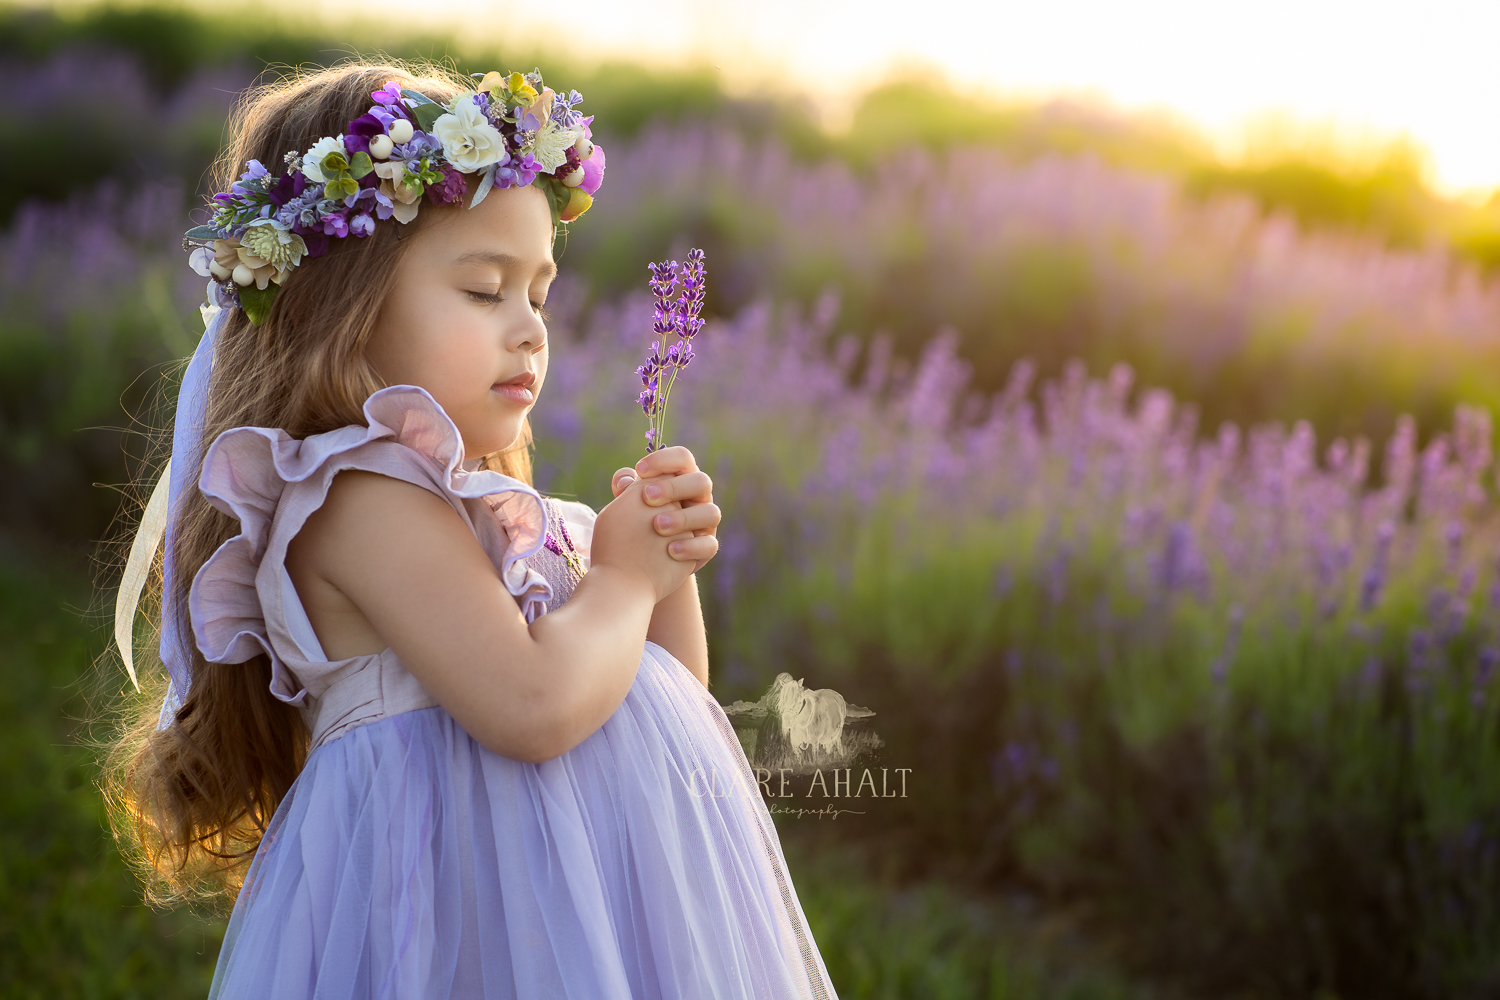 Photographic Portrait of a girl in a purple dress holding lavender in a field in Maryland.  Taken by Professional Portrait Photographer Clare Ahalt Photography, located in Frederick MD, specializing in fine art child portraiture and high school senior portrait photography